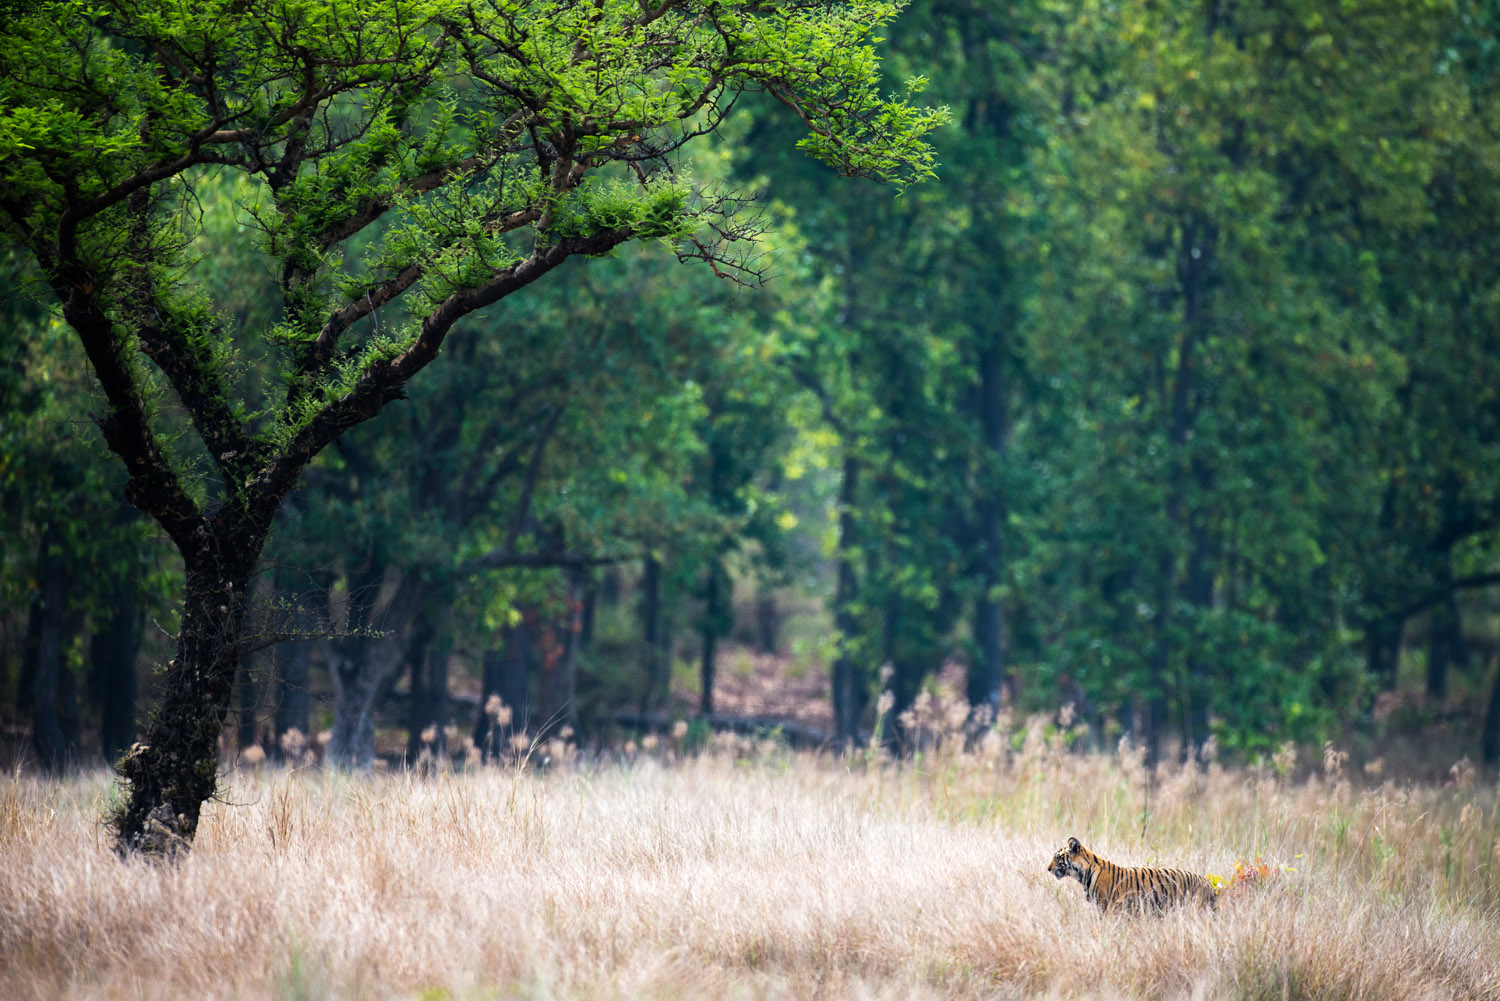 Bengal tiger cub in meadow by 'khair' tree, Bandhavgarh National Park, Madhya Pradesh, India